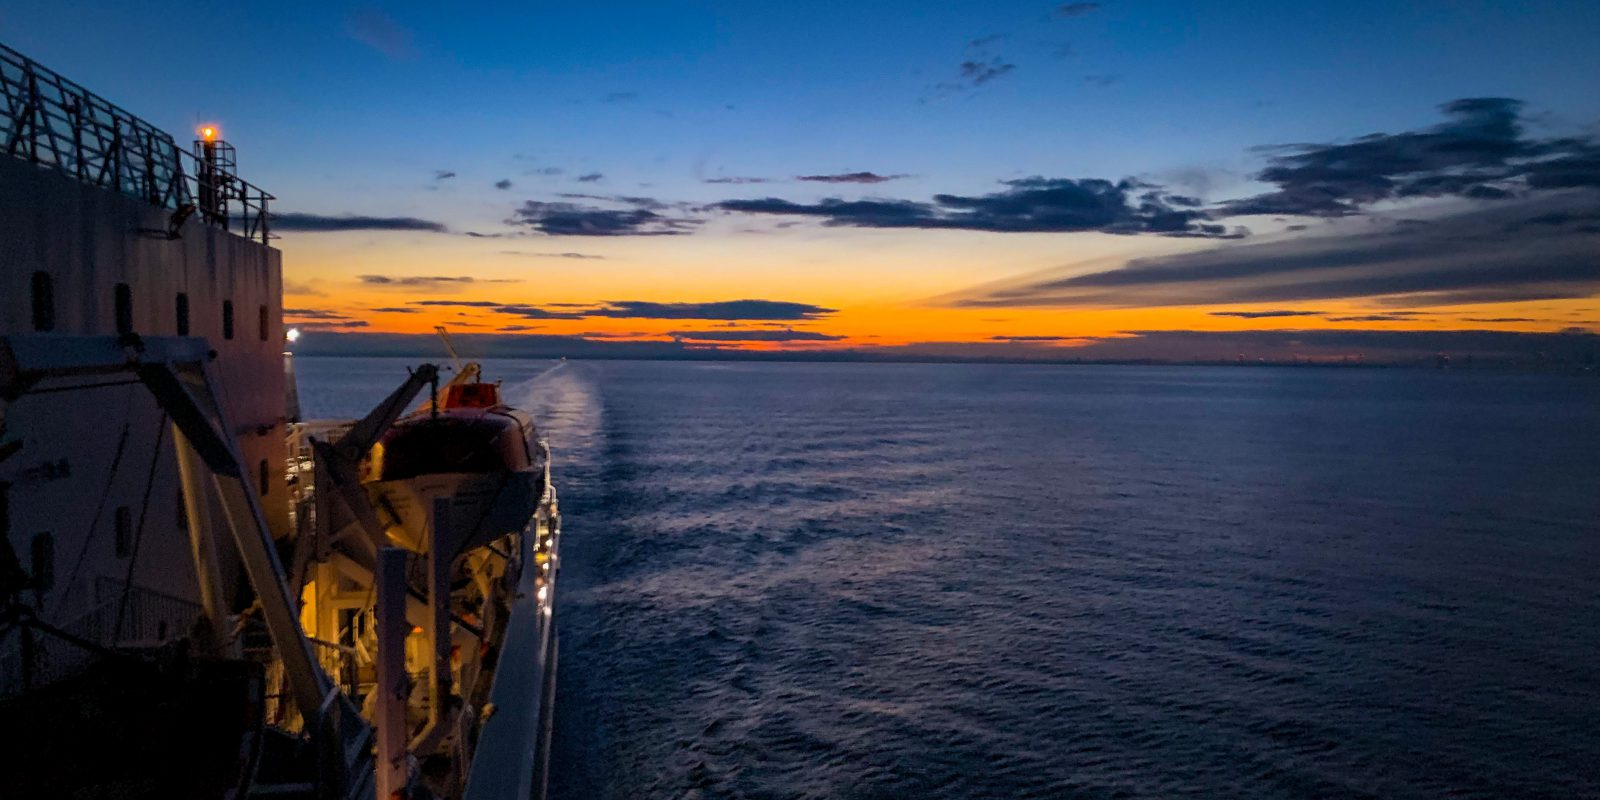 Photo taken from the side of Steam Packet Company vessel Ben-my-Chree which looks out onto blue and orange sky